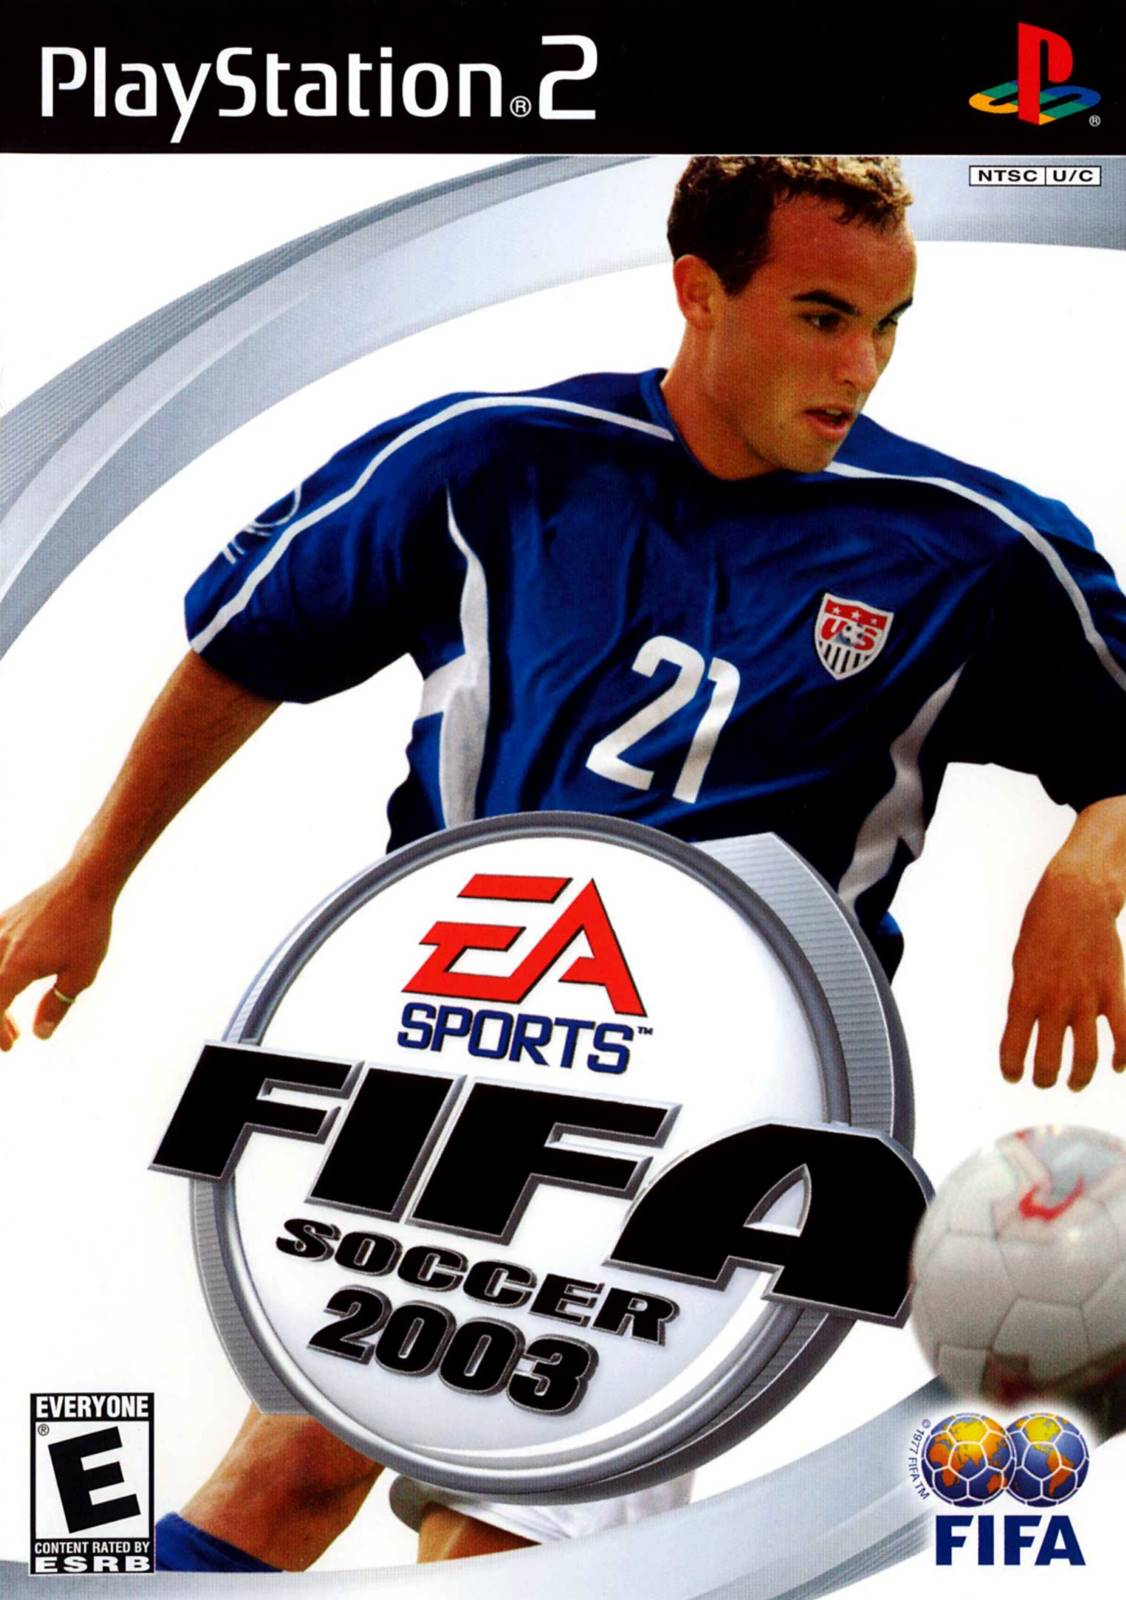 FIFA 2003 Sony Playstation 2 Game